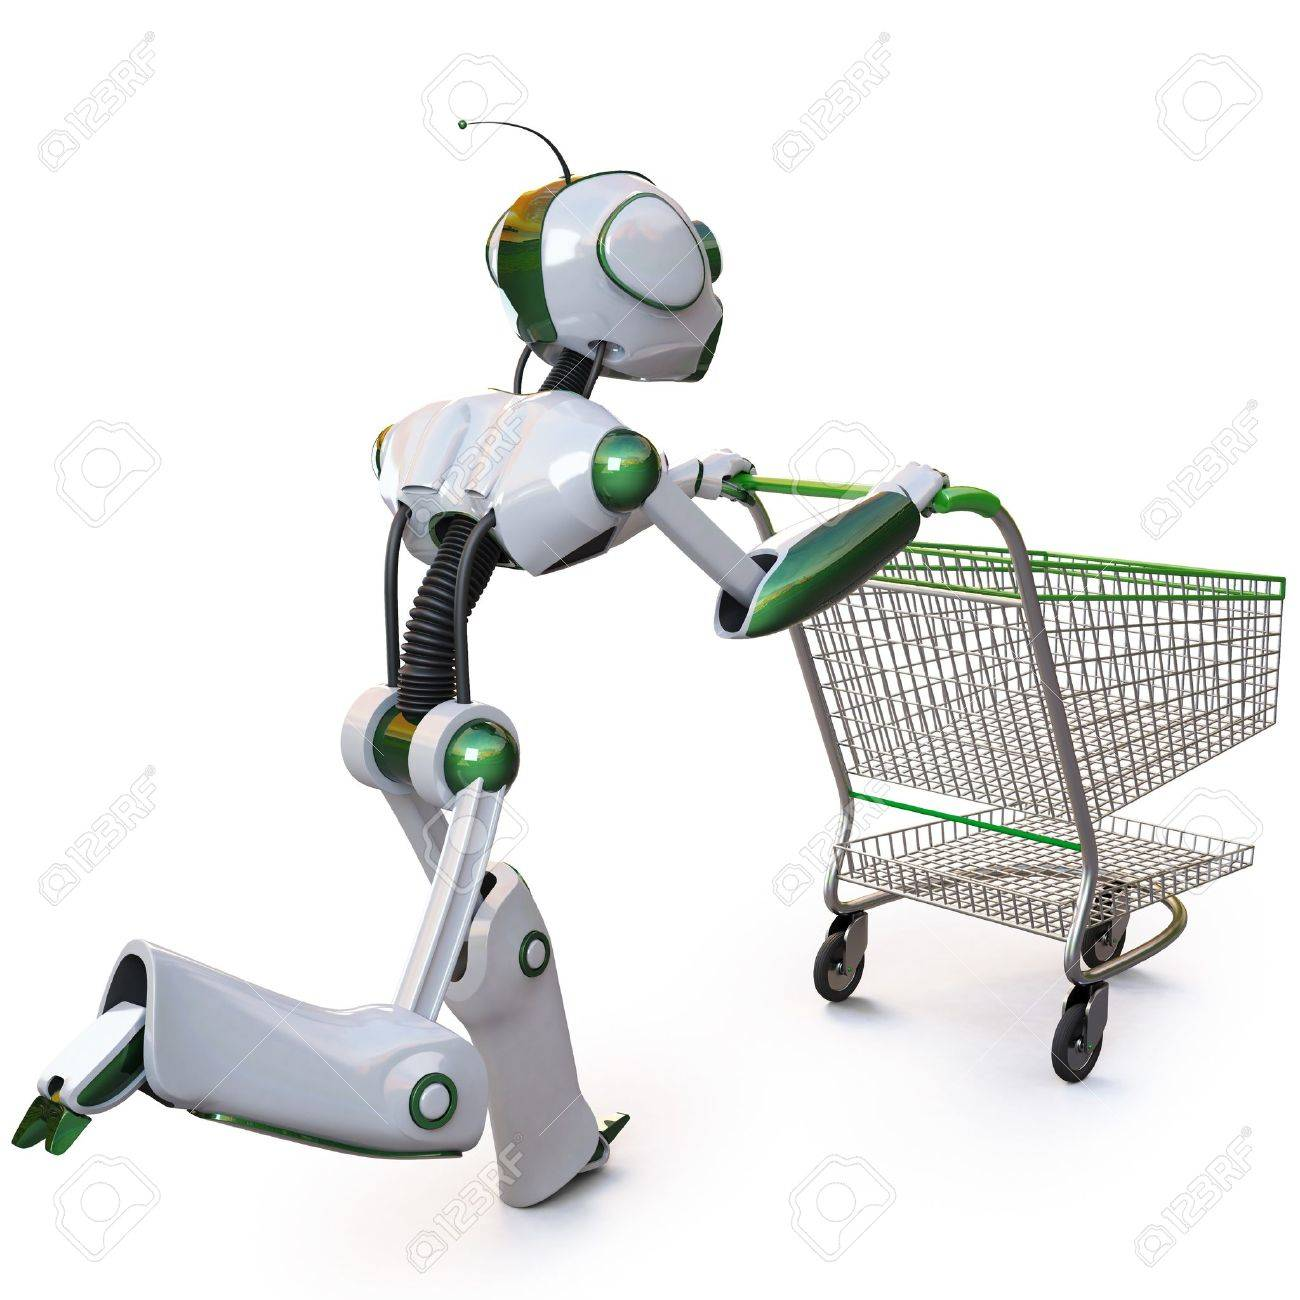 robot runs pushing a shopping cart. isolated on white including clipping path. Stock Photo - 8143996